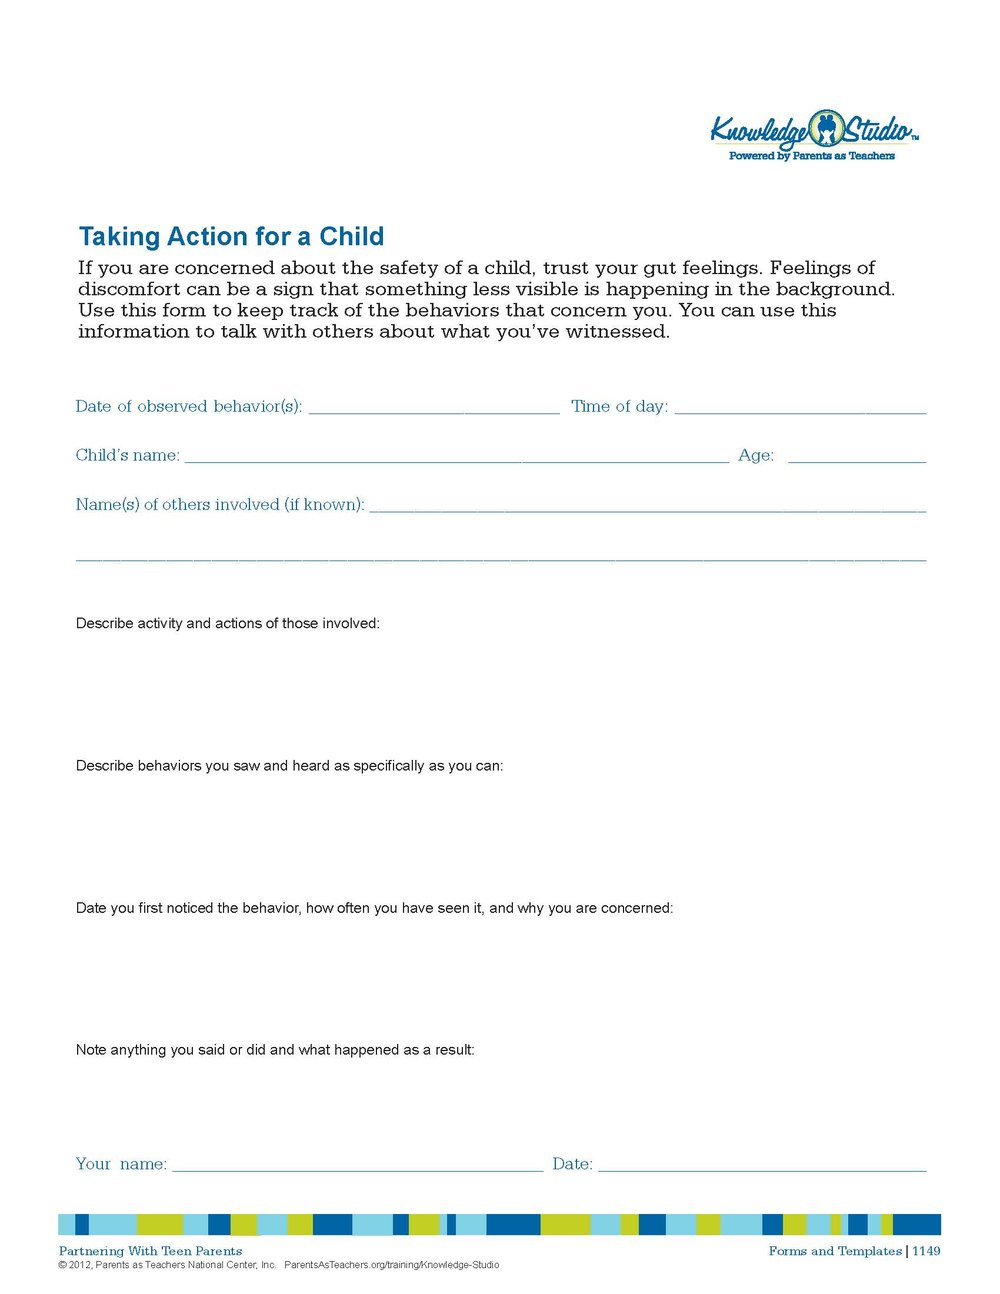 Taking Action for a Child  Parent Handout